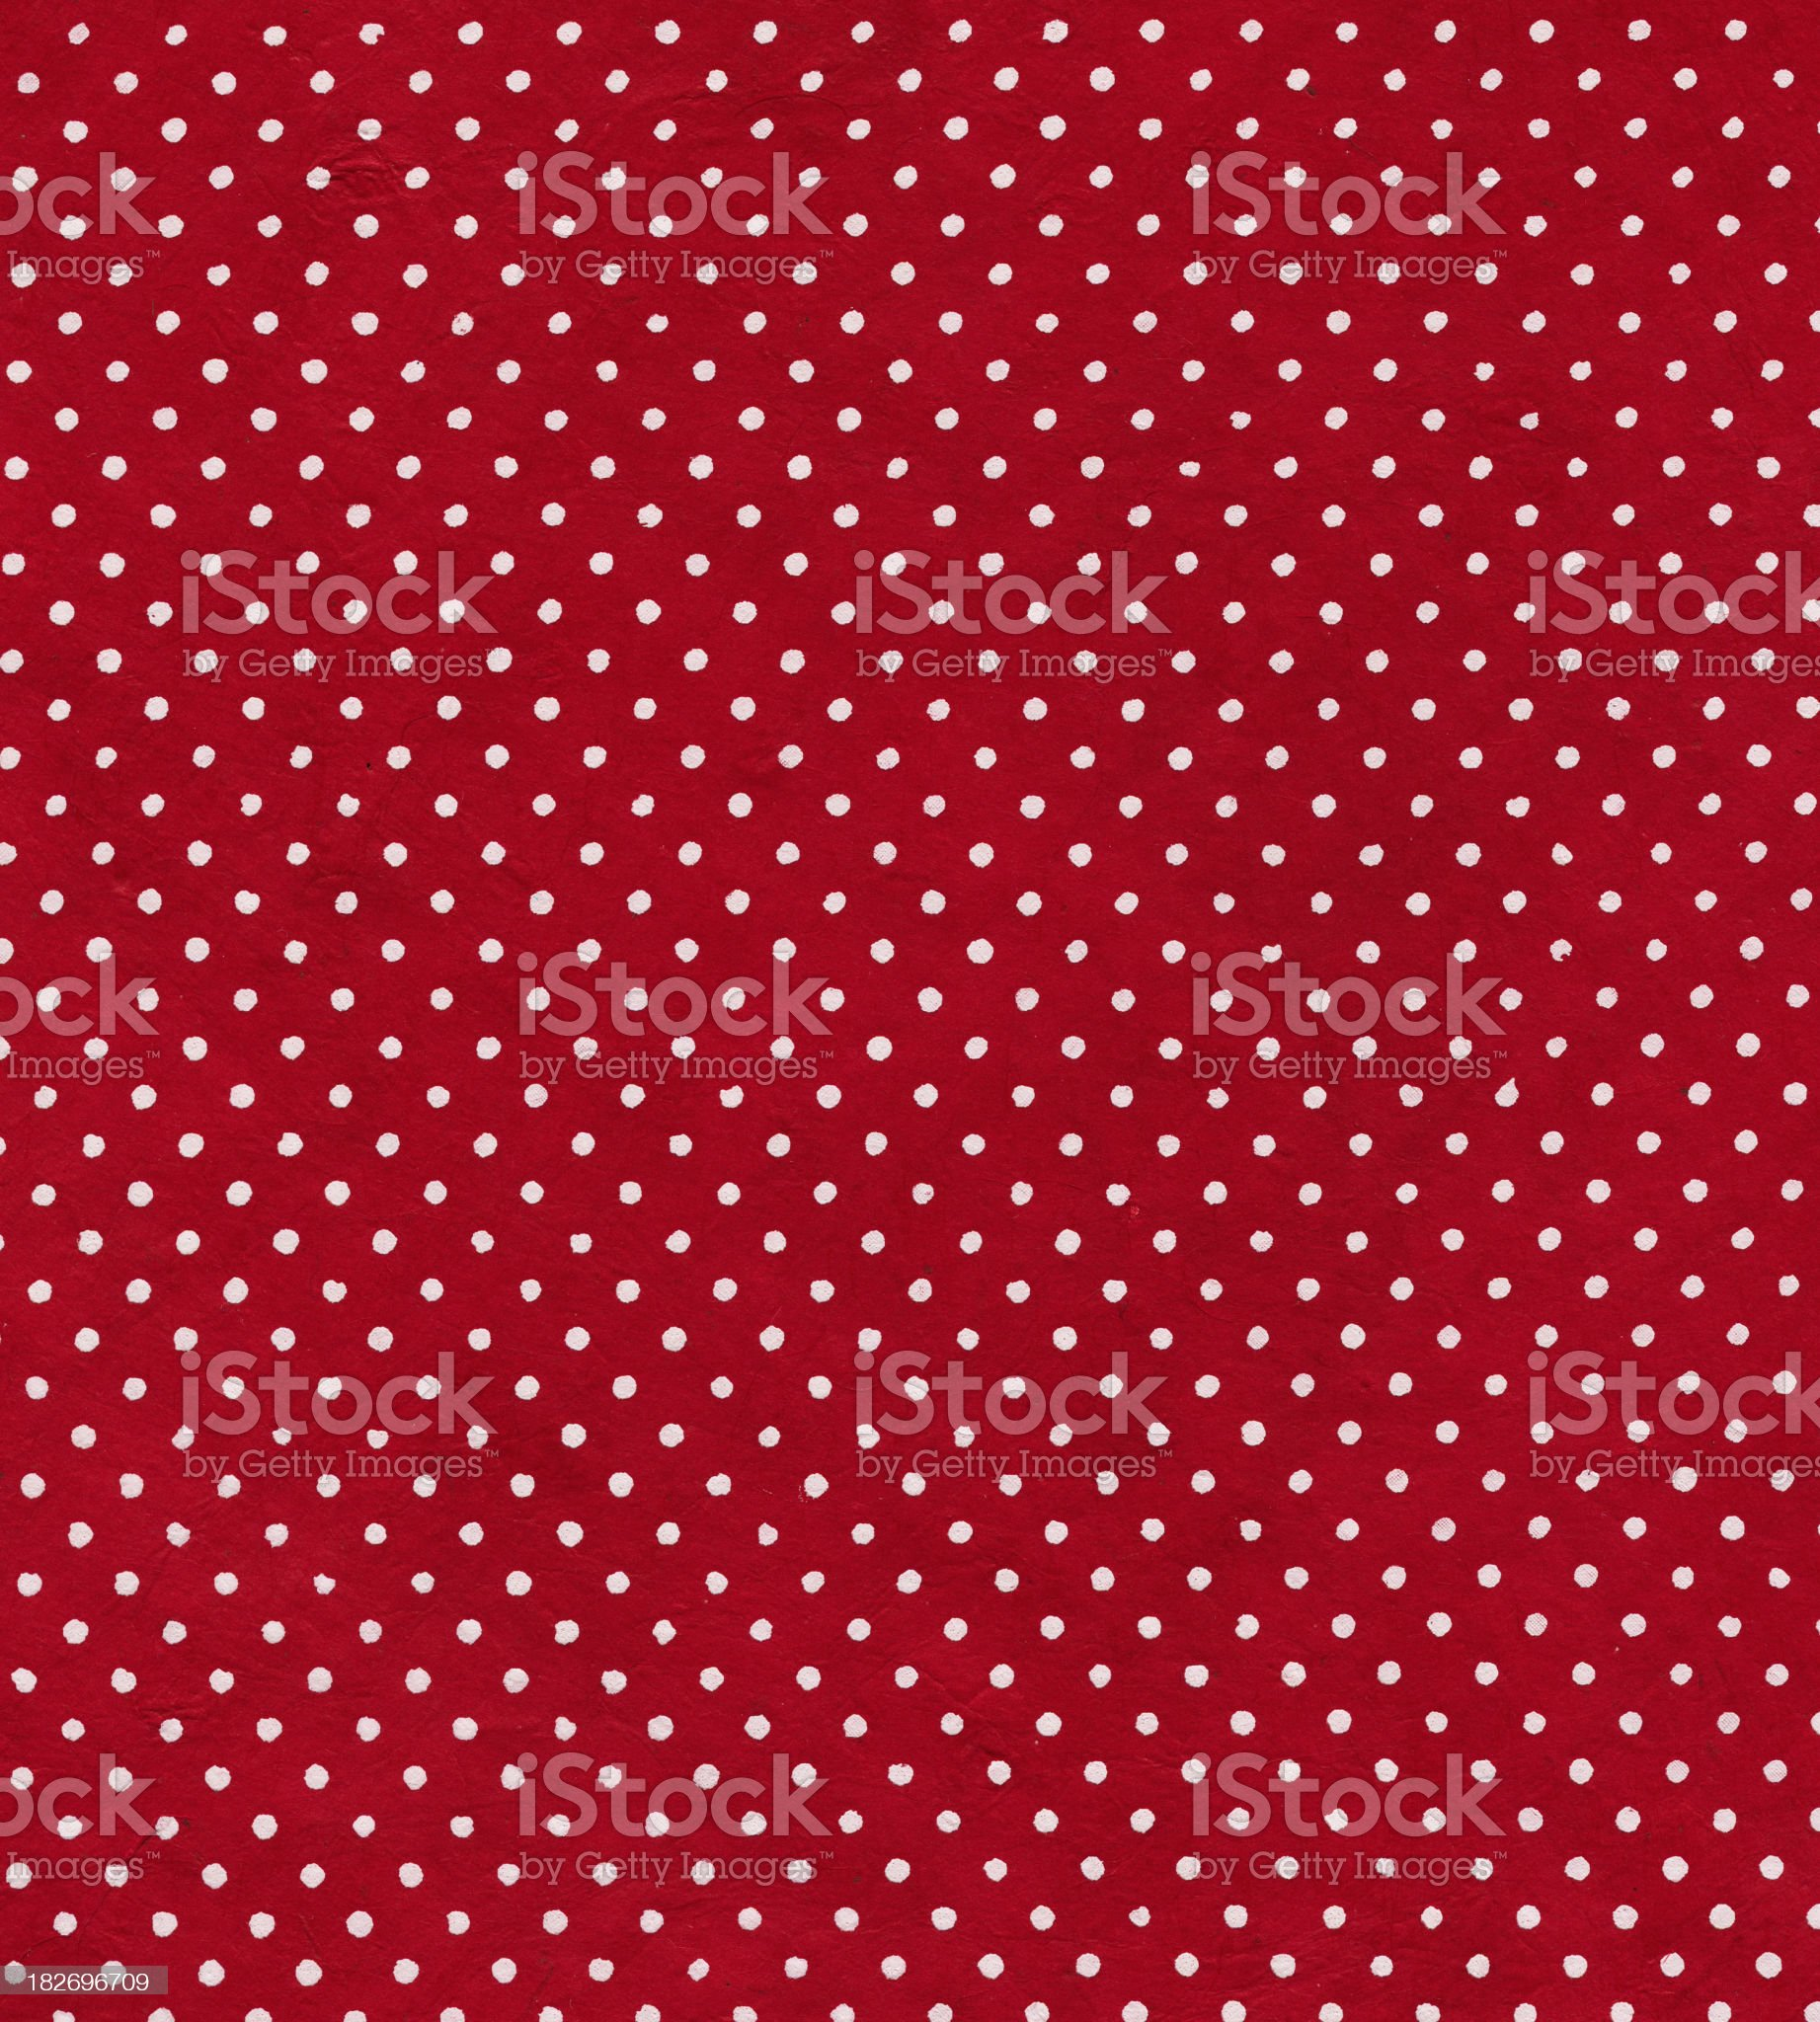 red polka dot paper royalty-free stock vector art